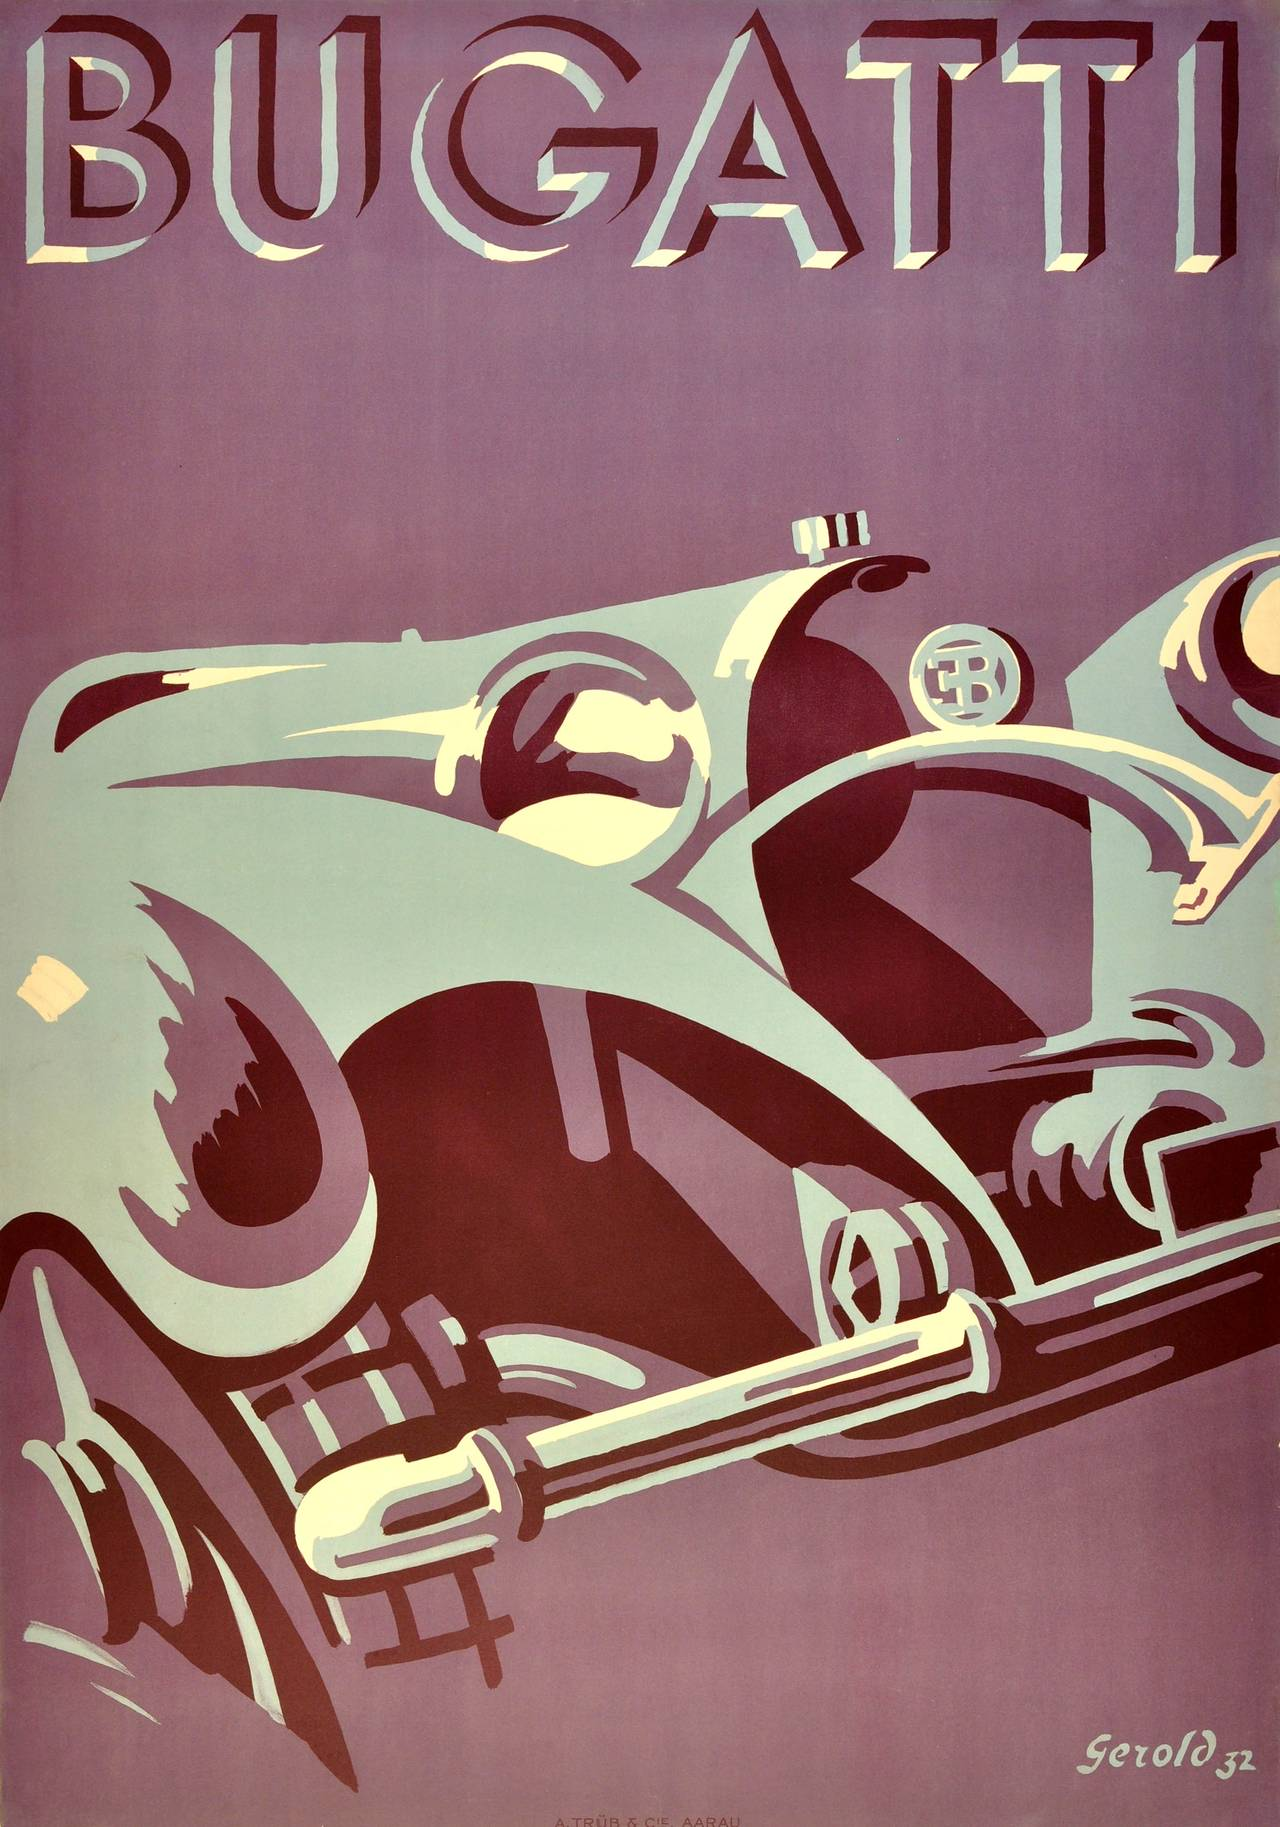 gerold hunziker original iconic art deco bugatti car advertising poster by gerold hunziker. Black Bedroom Furniture Sets. Home Design Ideas